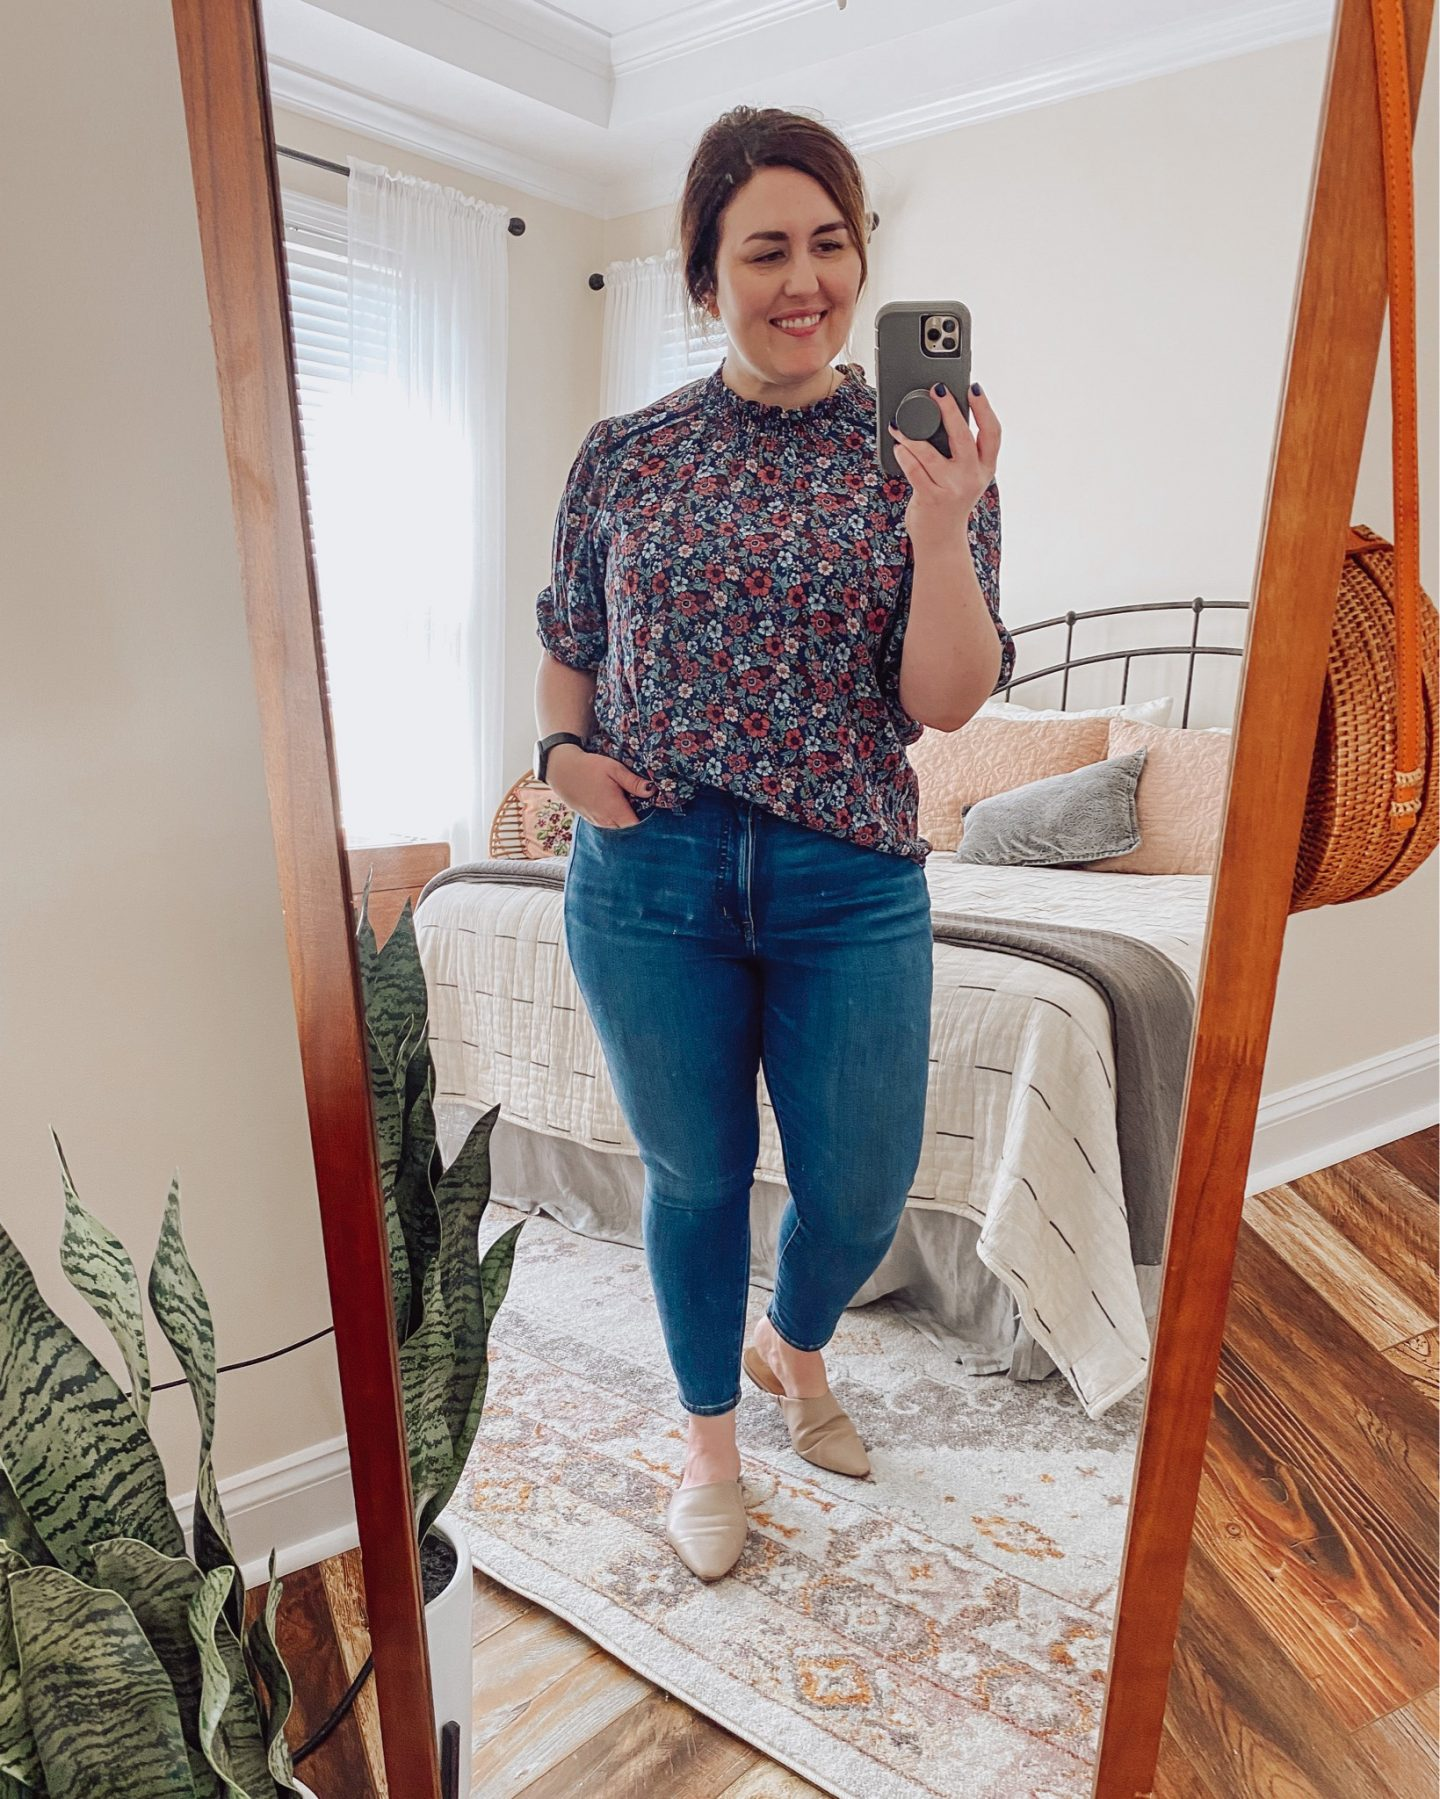 NC blogger Rebecca Lately is sharing her favorite fall transition workwear outfits. Check this out for business casual inspiration!